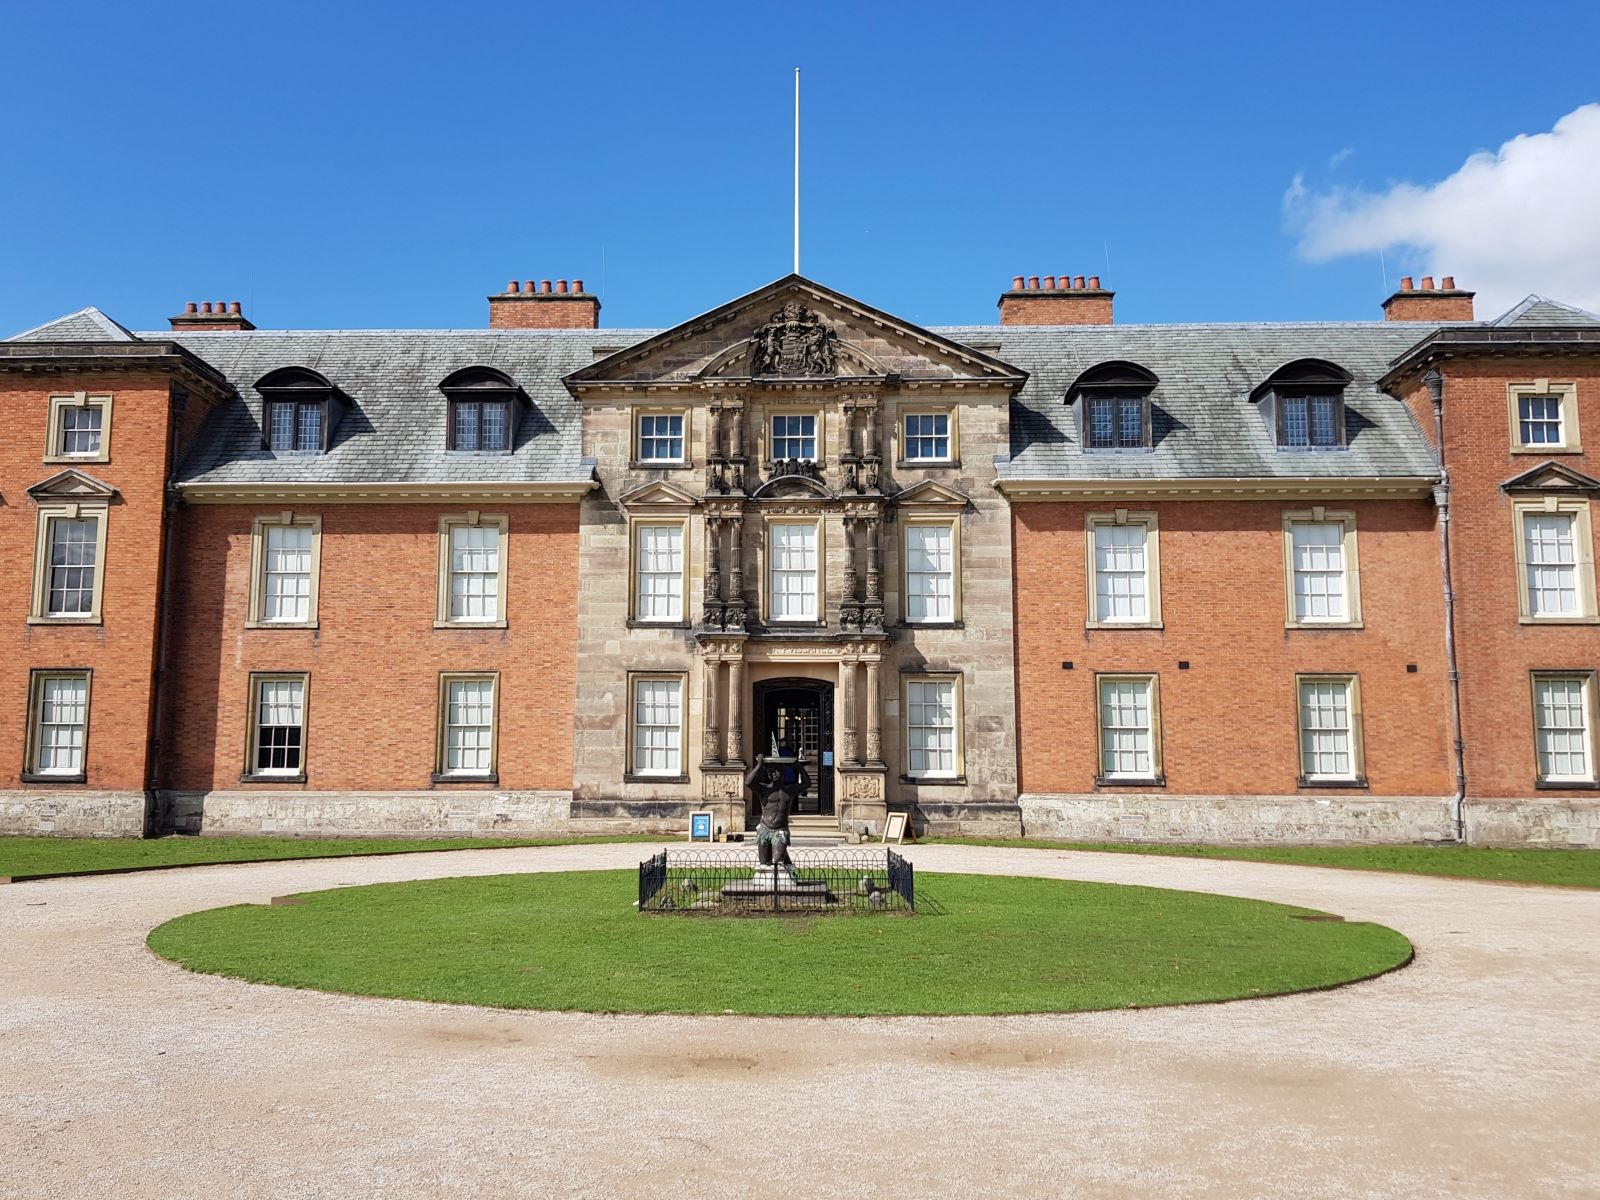 Dunham Massey, National Trust